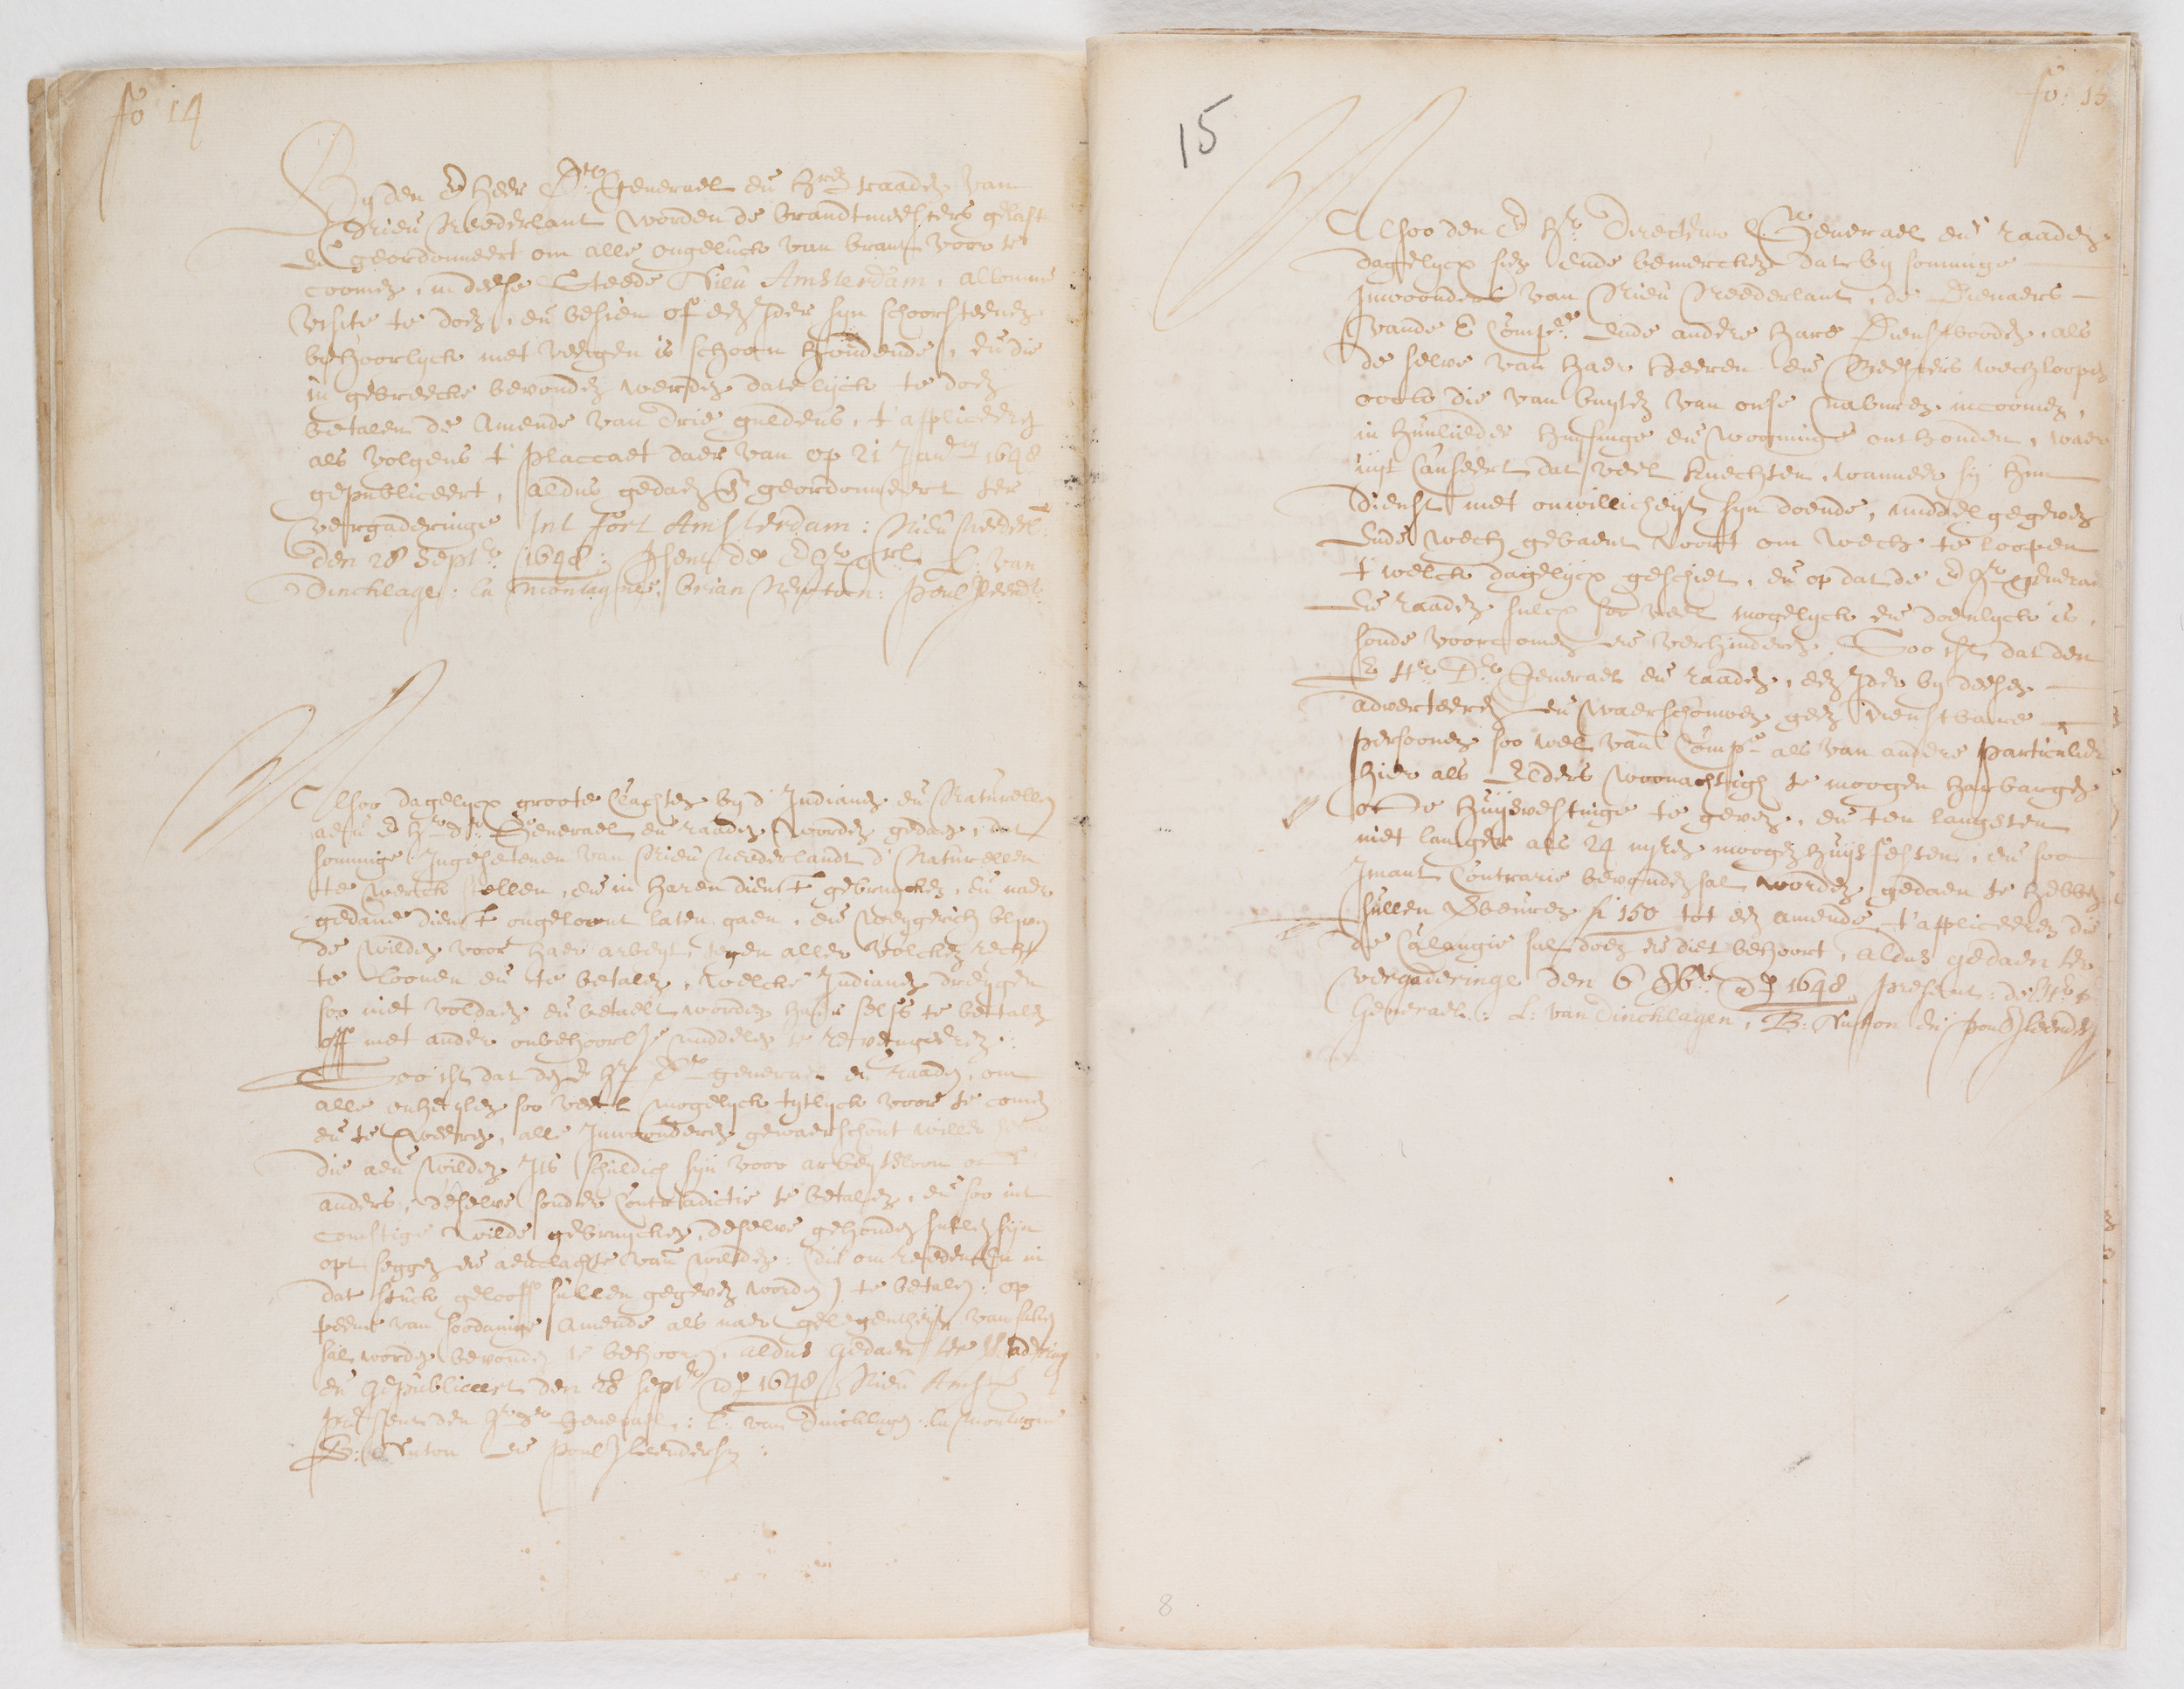 Ordinances of New Amsterdam, page 14-15